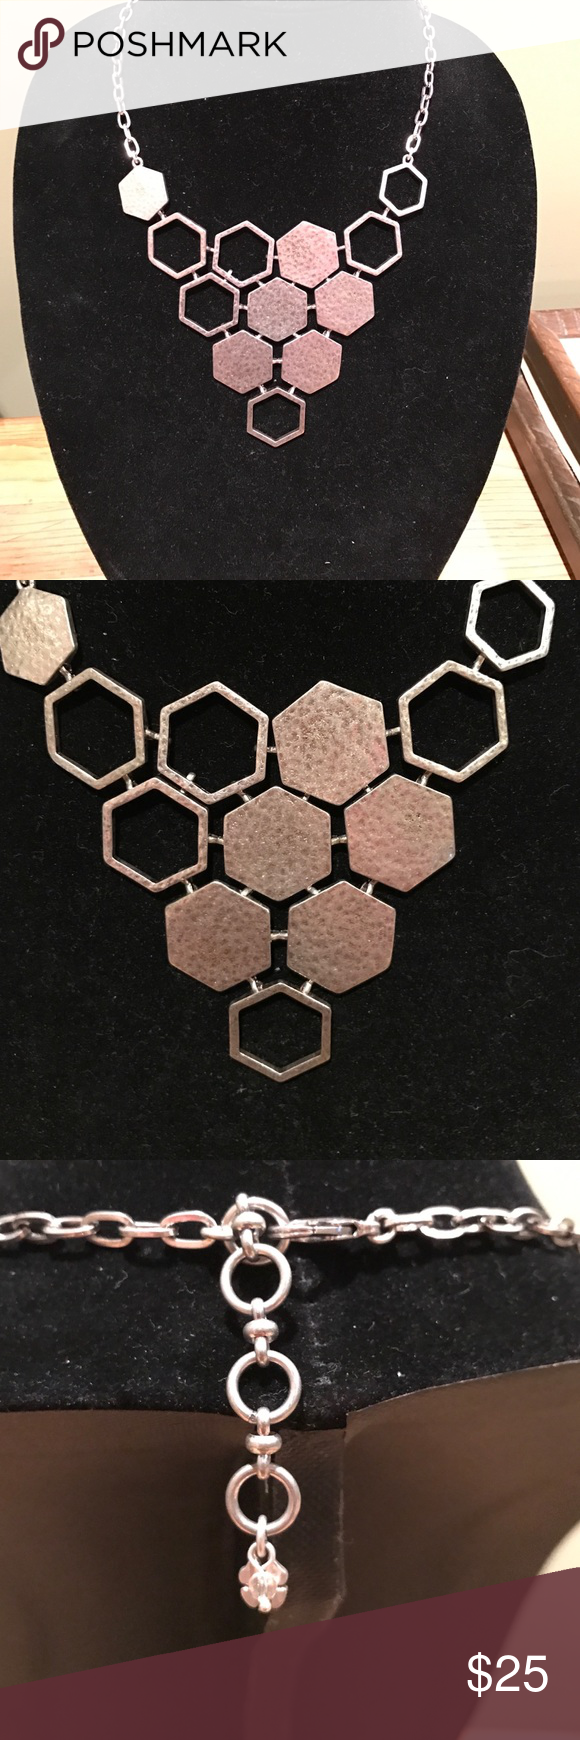 """NWOT Lucky Brand silver honeycomb necklace New without tags. - Silver-tone honeycomb collar necklace - Lobster clasp - Approx. 17"""" length with 2"""" extender - Approx. 3.5"""" H x 5"""" W bib - Imported Lucky Brand Jewelry Necklaces"""